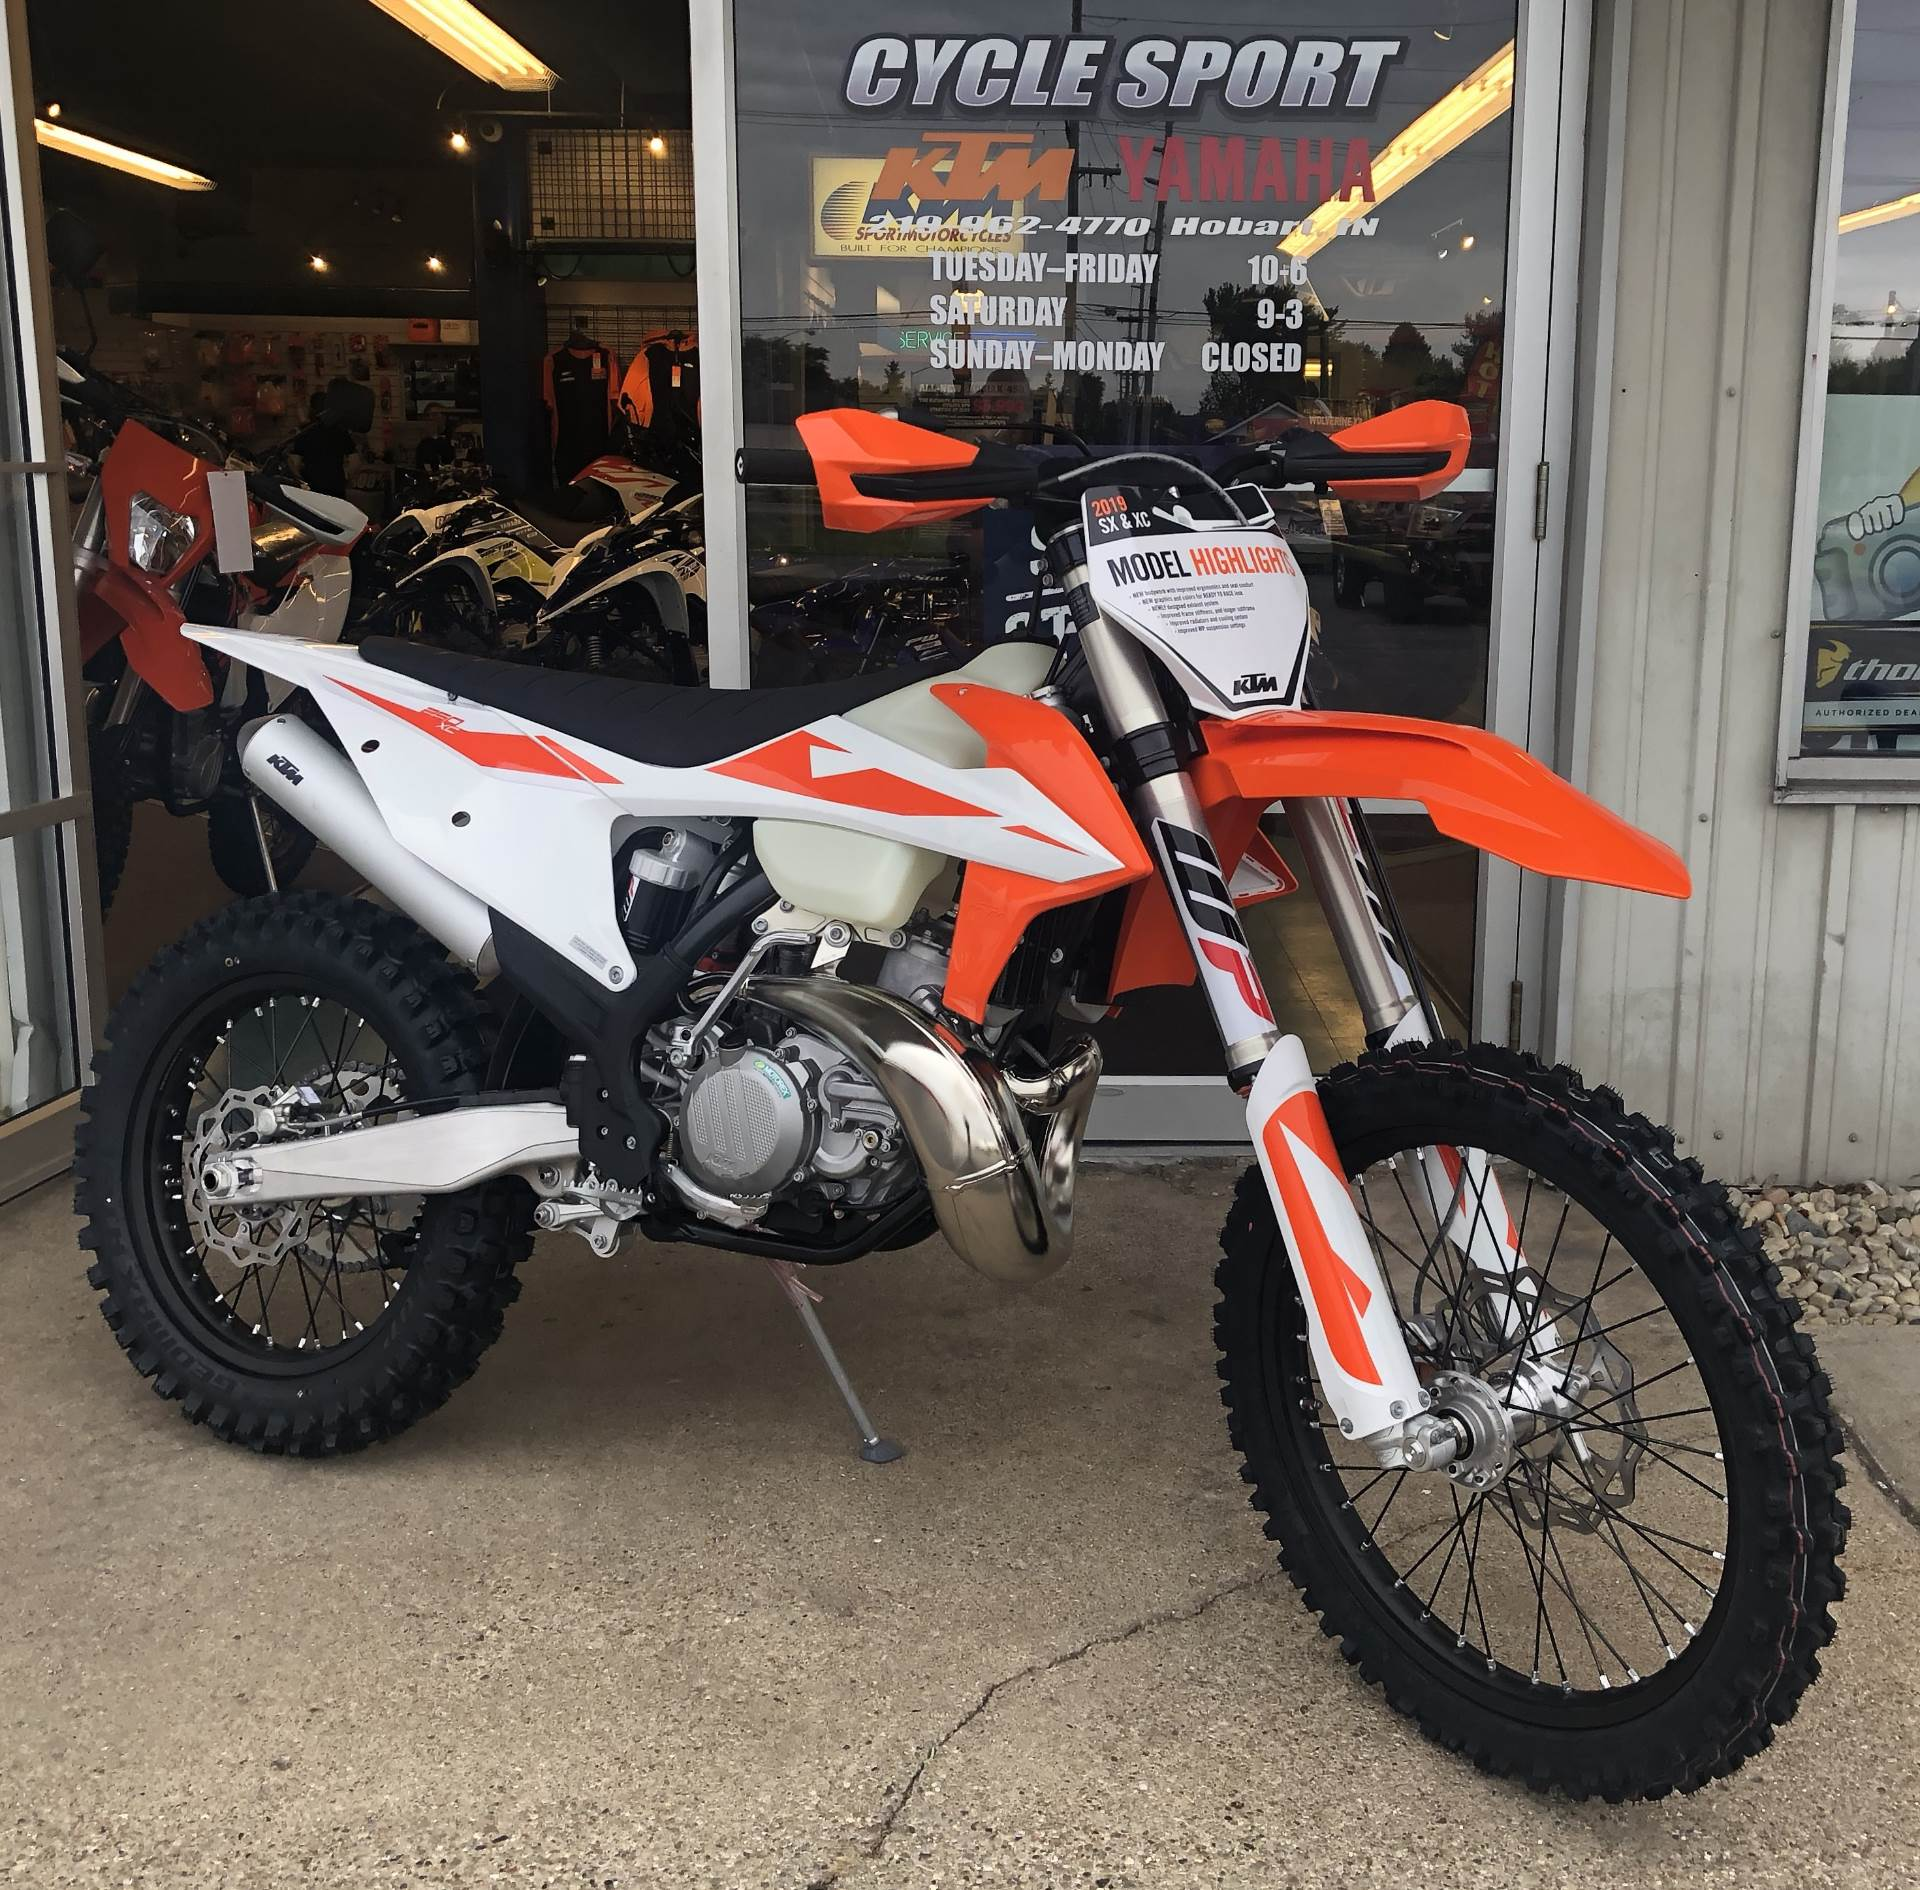 new 2019 ktm 250 xc motorcycles in hobart in stock. Black Bedroom Furniture Sets. Home Design Ideas